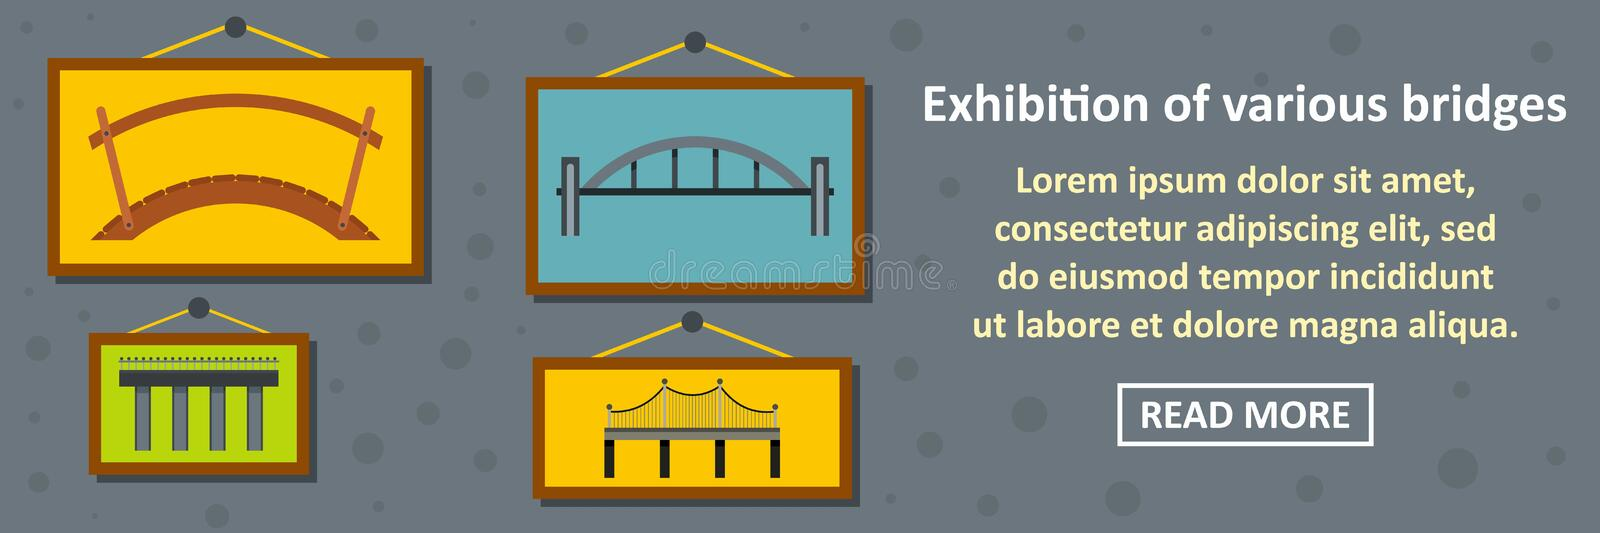 Exhibition of various bridges banner horizontal concept royalty free illustration